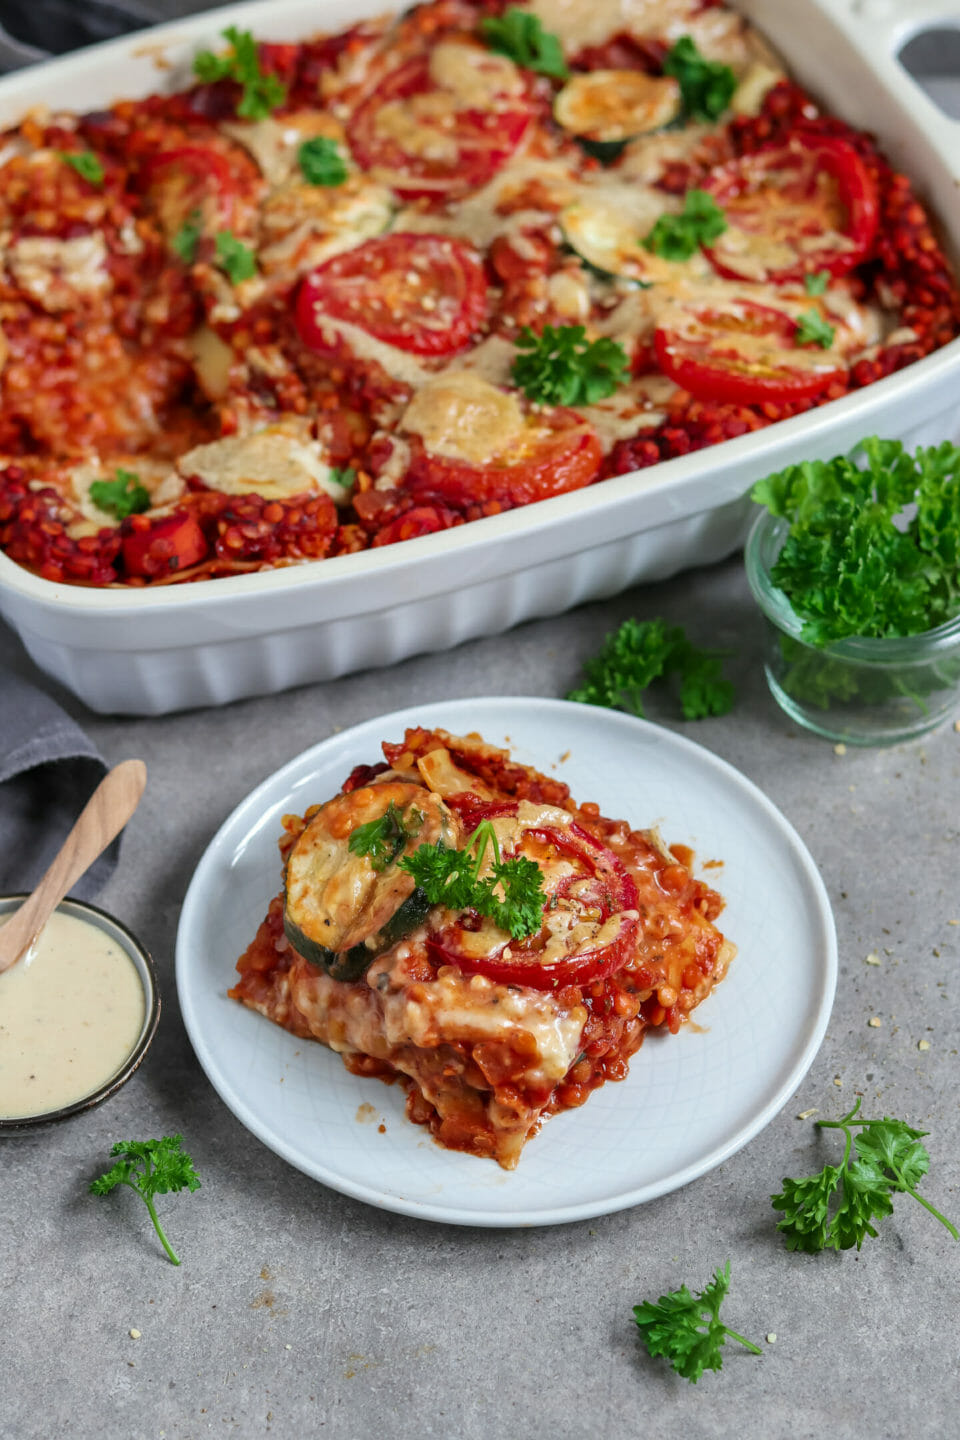 Vegan lasagna made of red lentil bolognese, lasagna sheets, zucchini, béchamel sauce and homemade cheese sauce